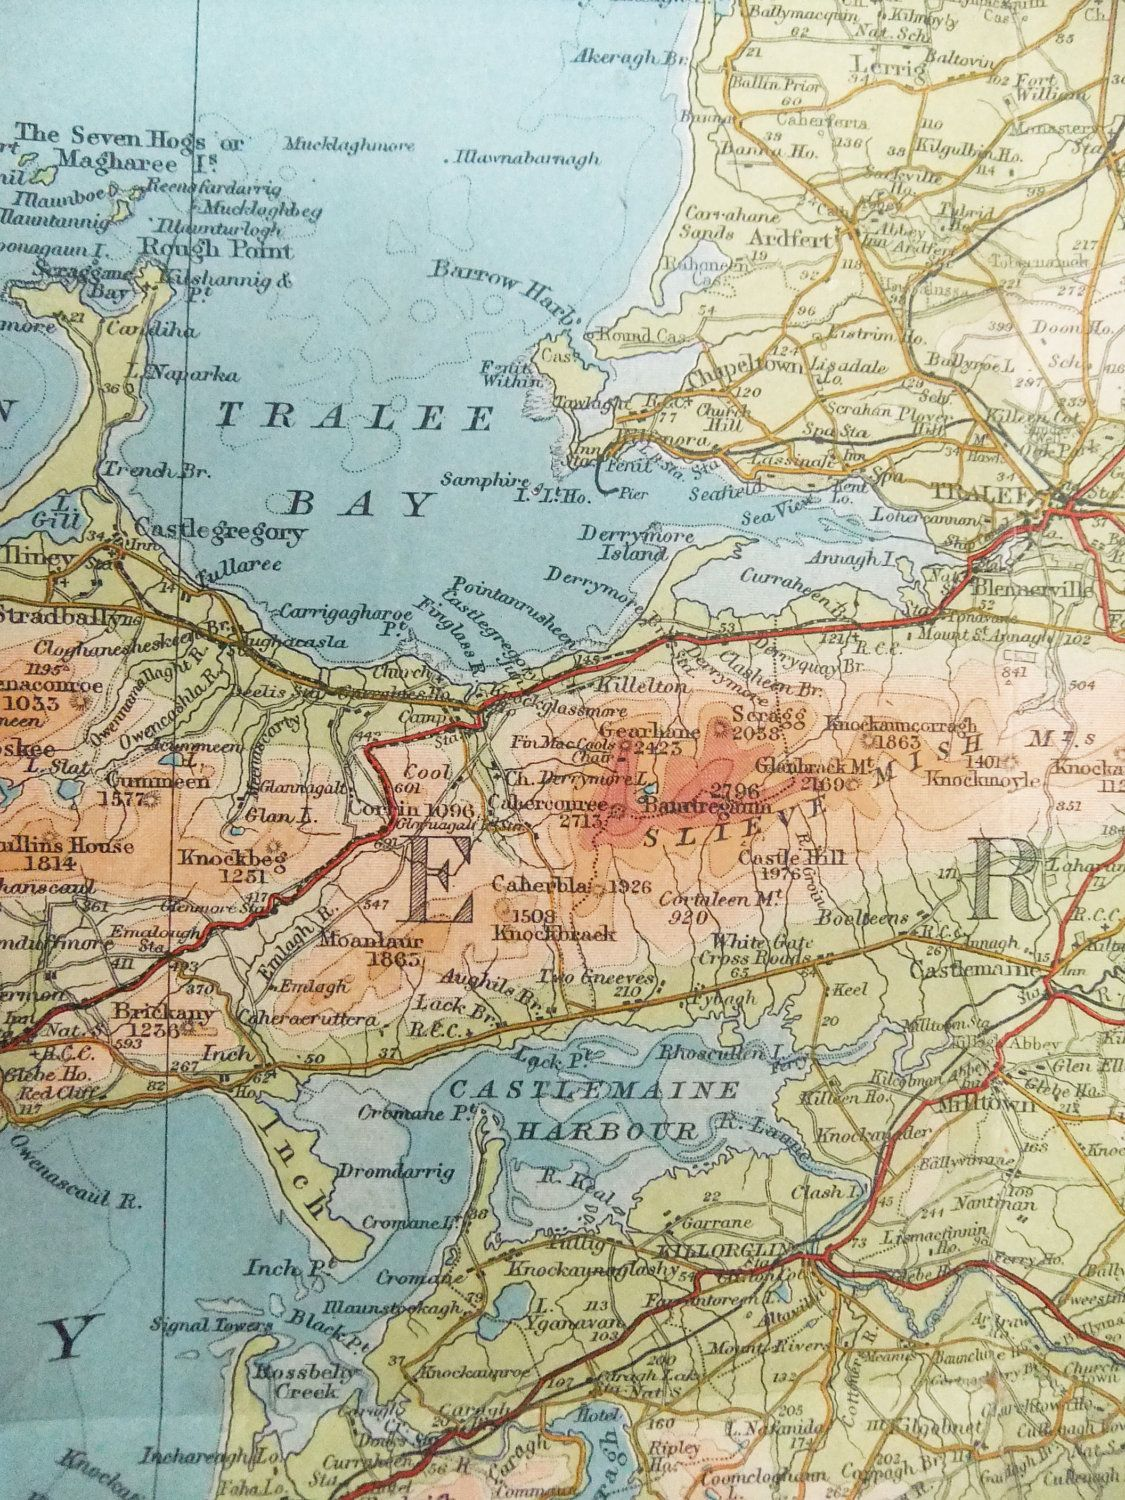 Killarney and Cork District   Old Map of Ireland showing Killarney     Killarney and Cork District   Old Map of Ireland showing Killarney and Cork  District